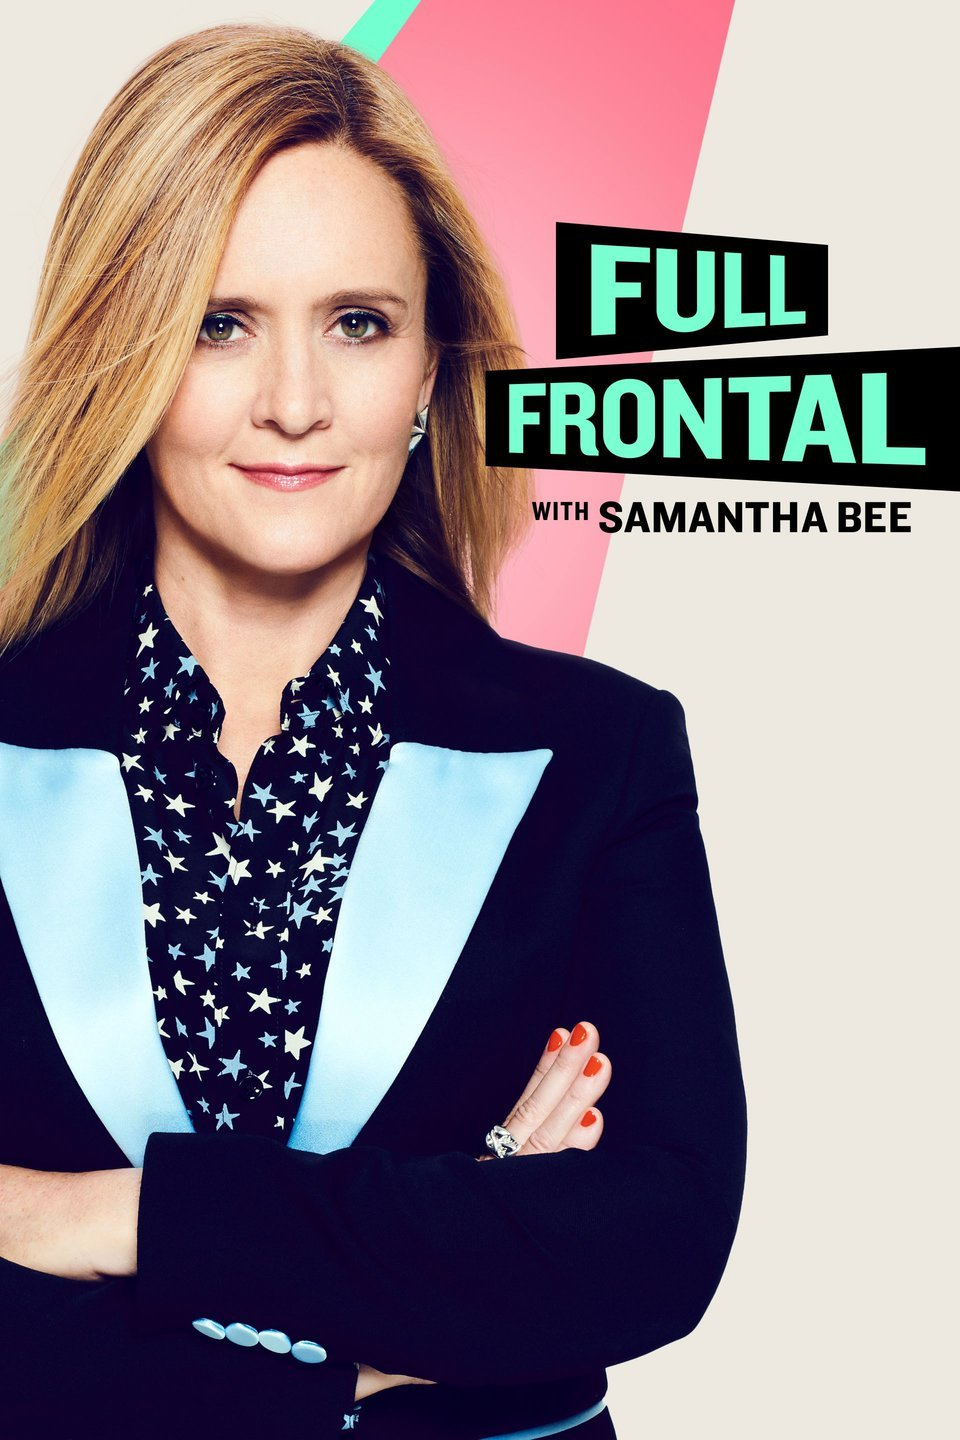 Full Frontal with Samantha Bee - Season 5 Episode 2 - February 12, 2020